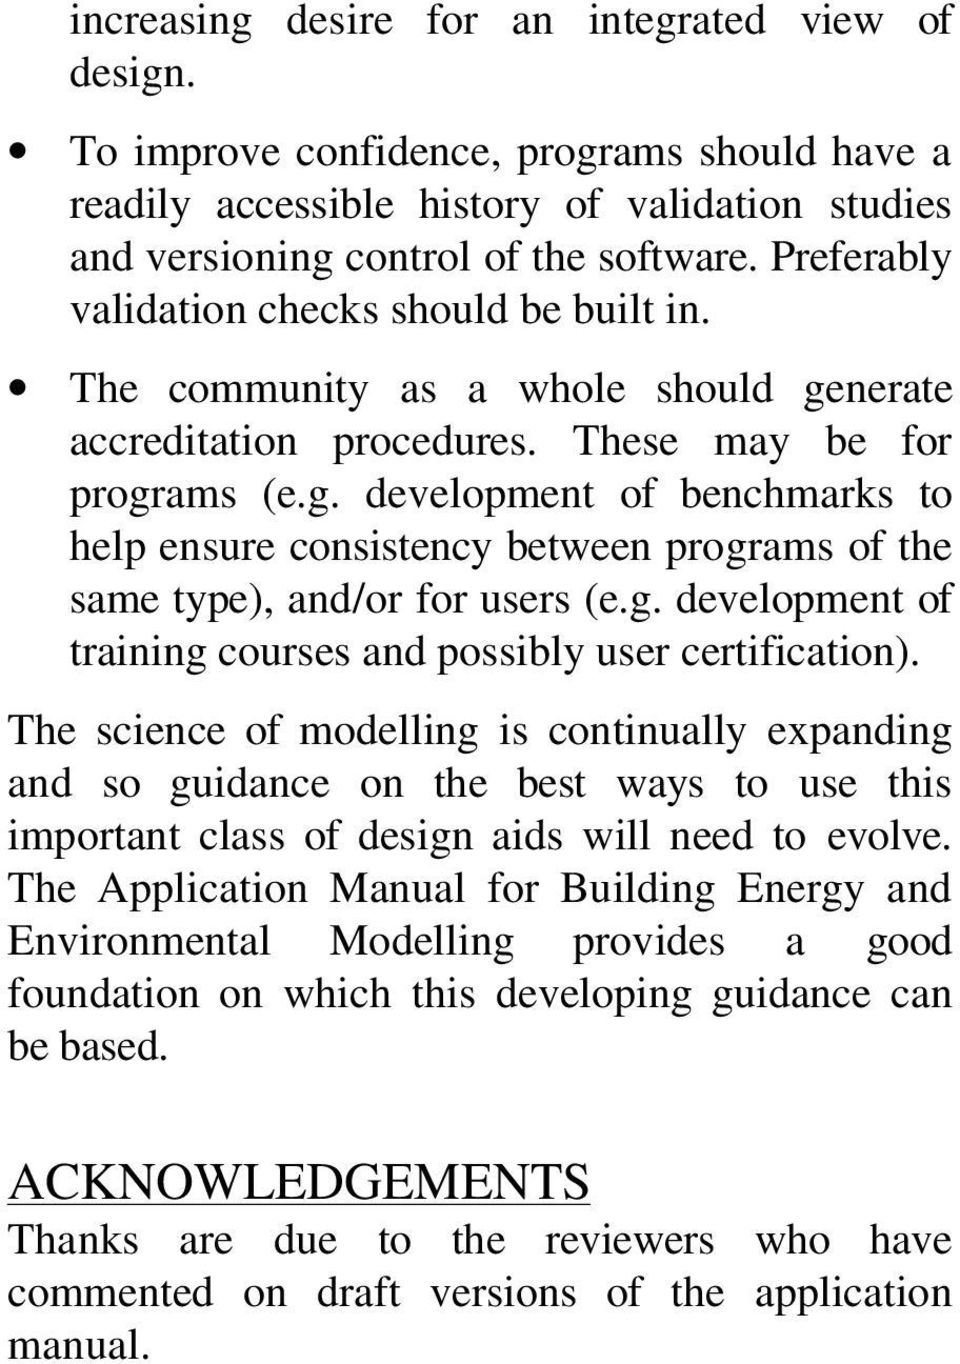 g. development of training courses and possibly user certification).